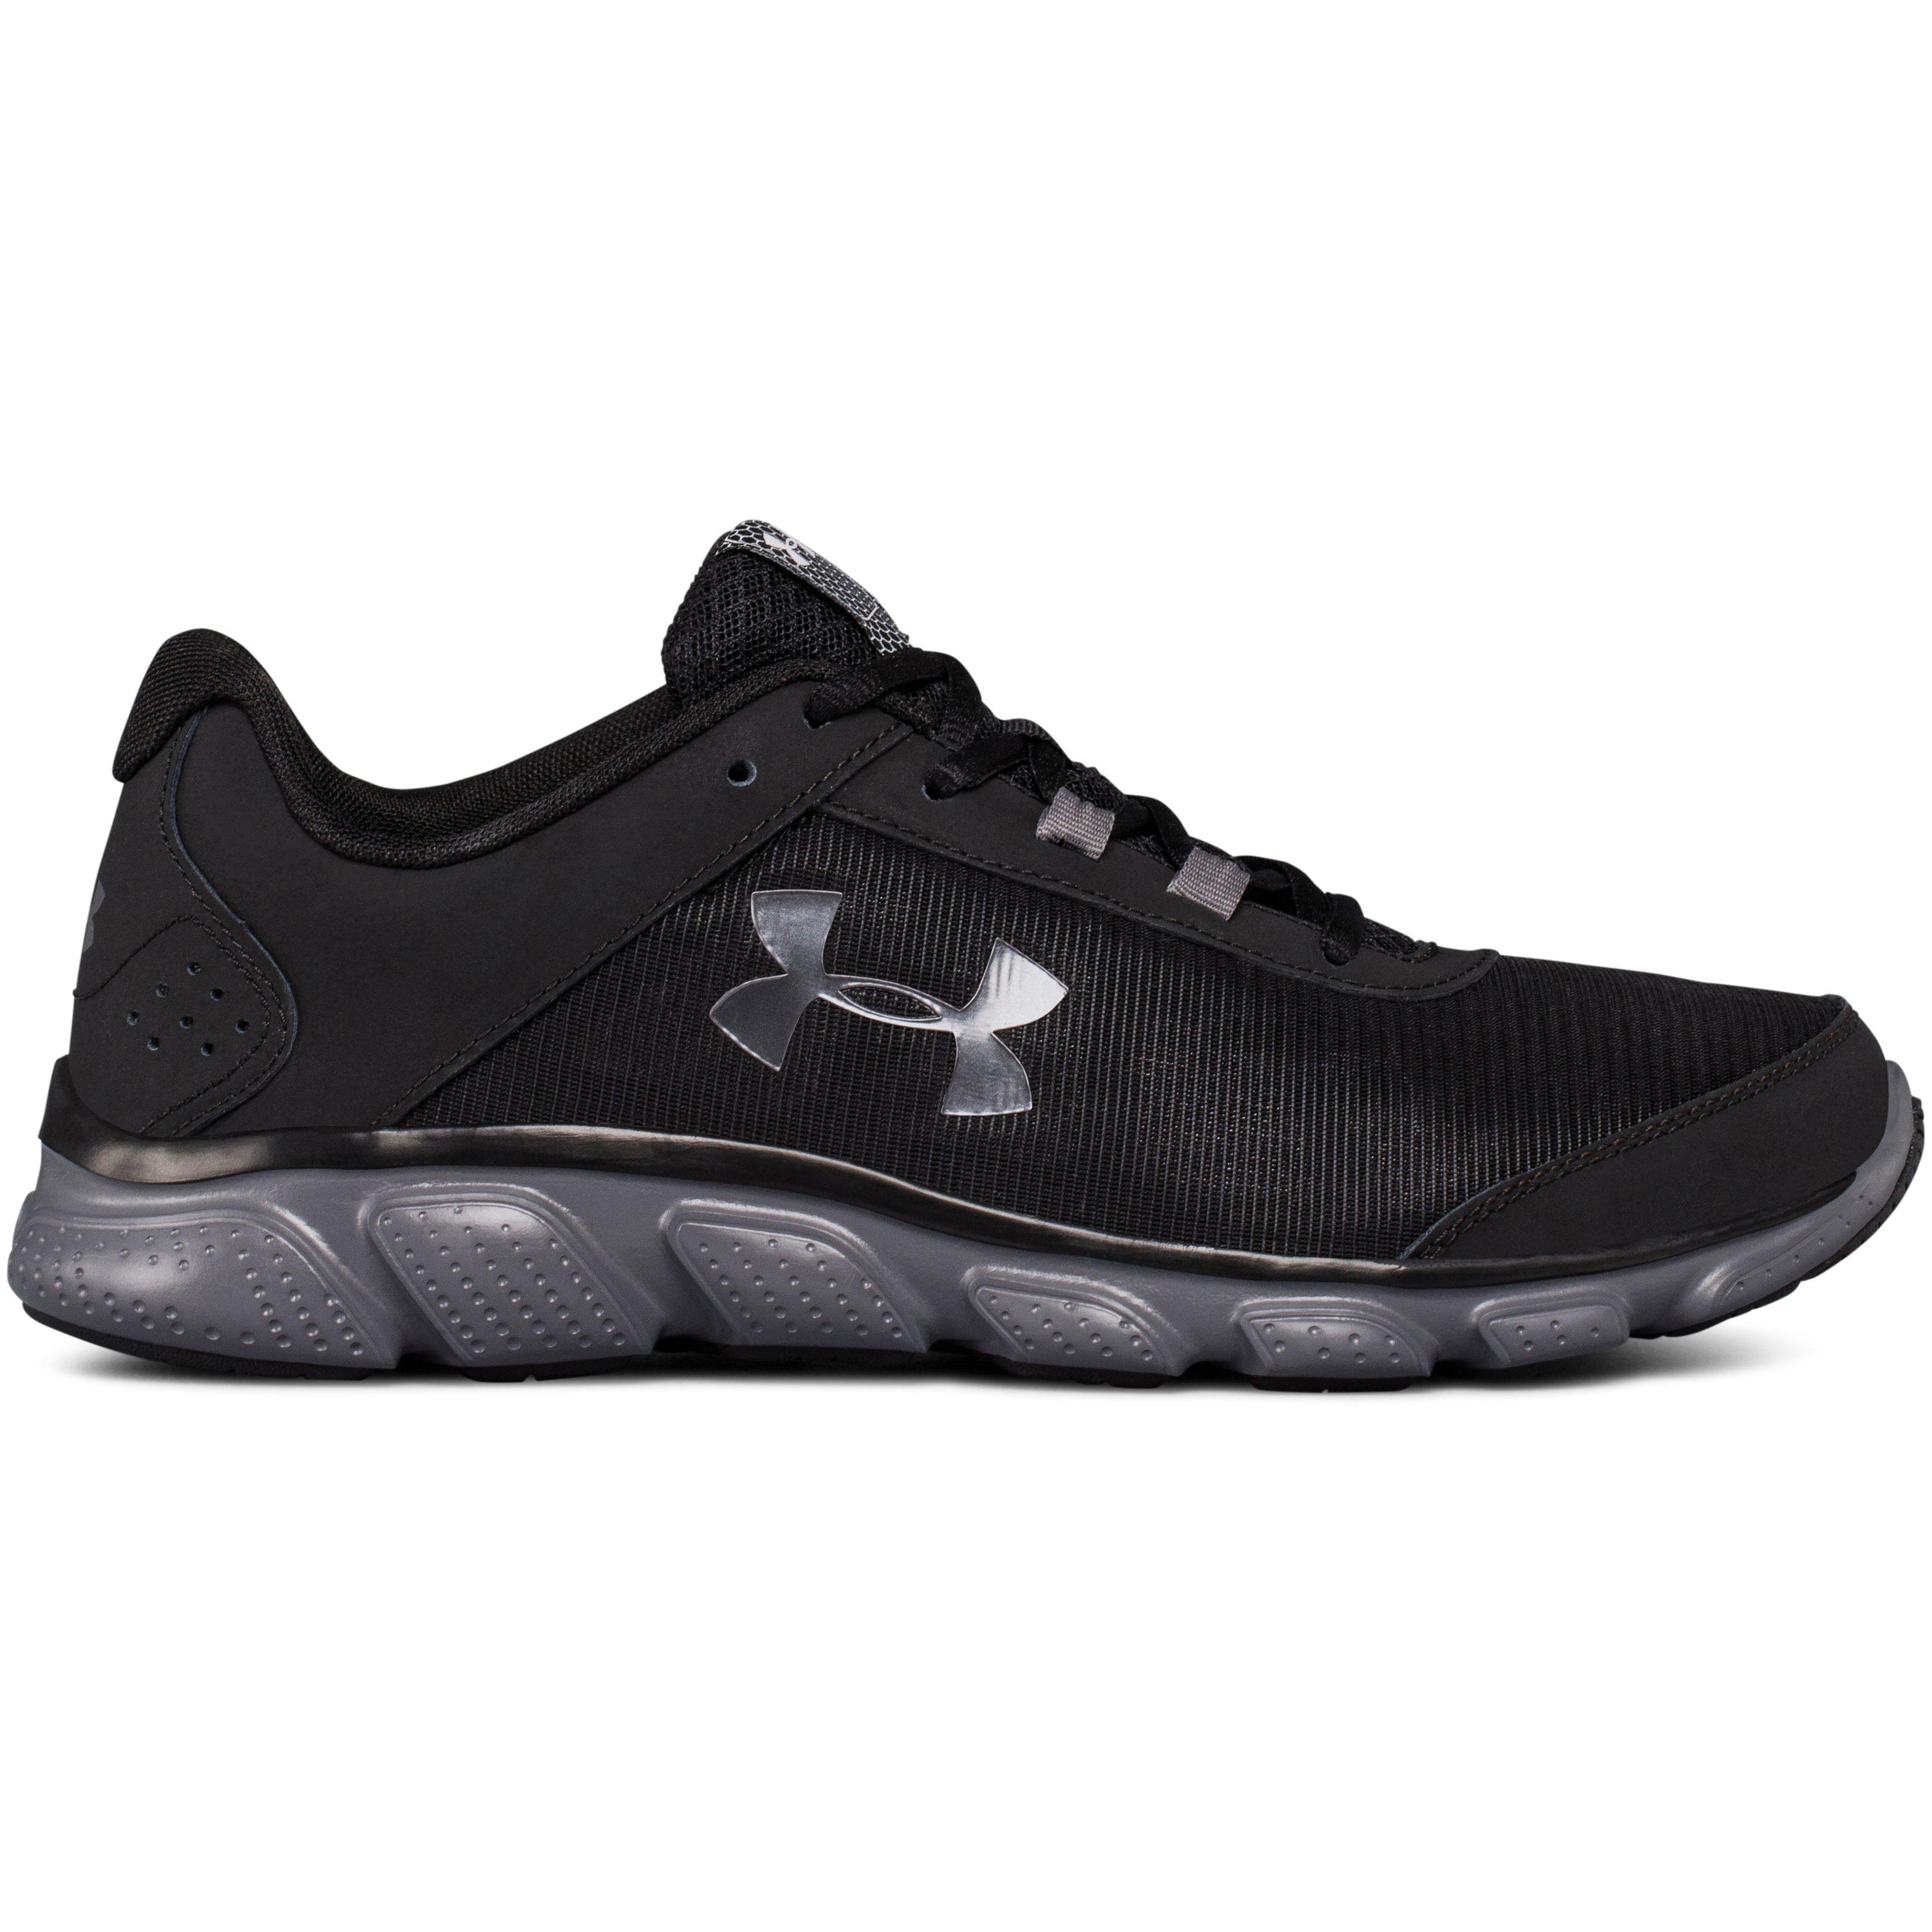 b510a0aabf Under Armour Men's Ua Micro G® Assert 7 Running Shoes in Black for ...